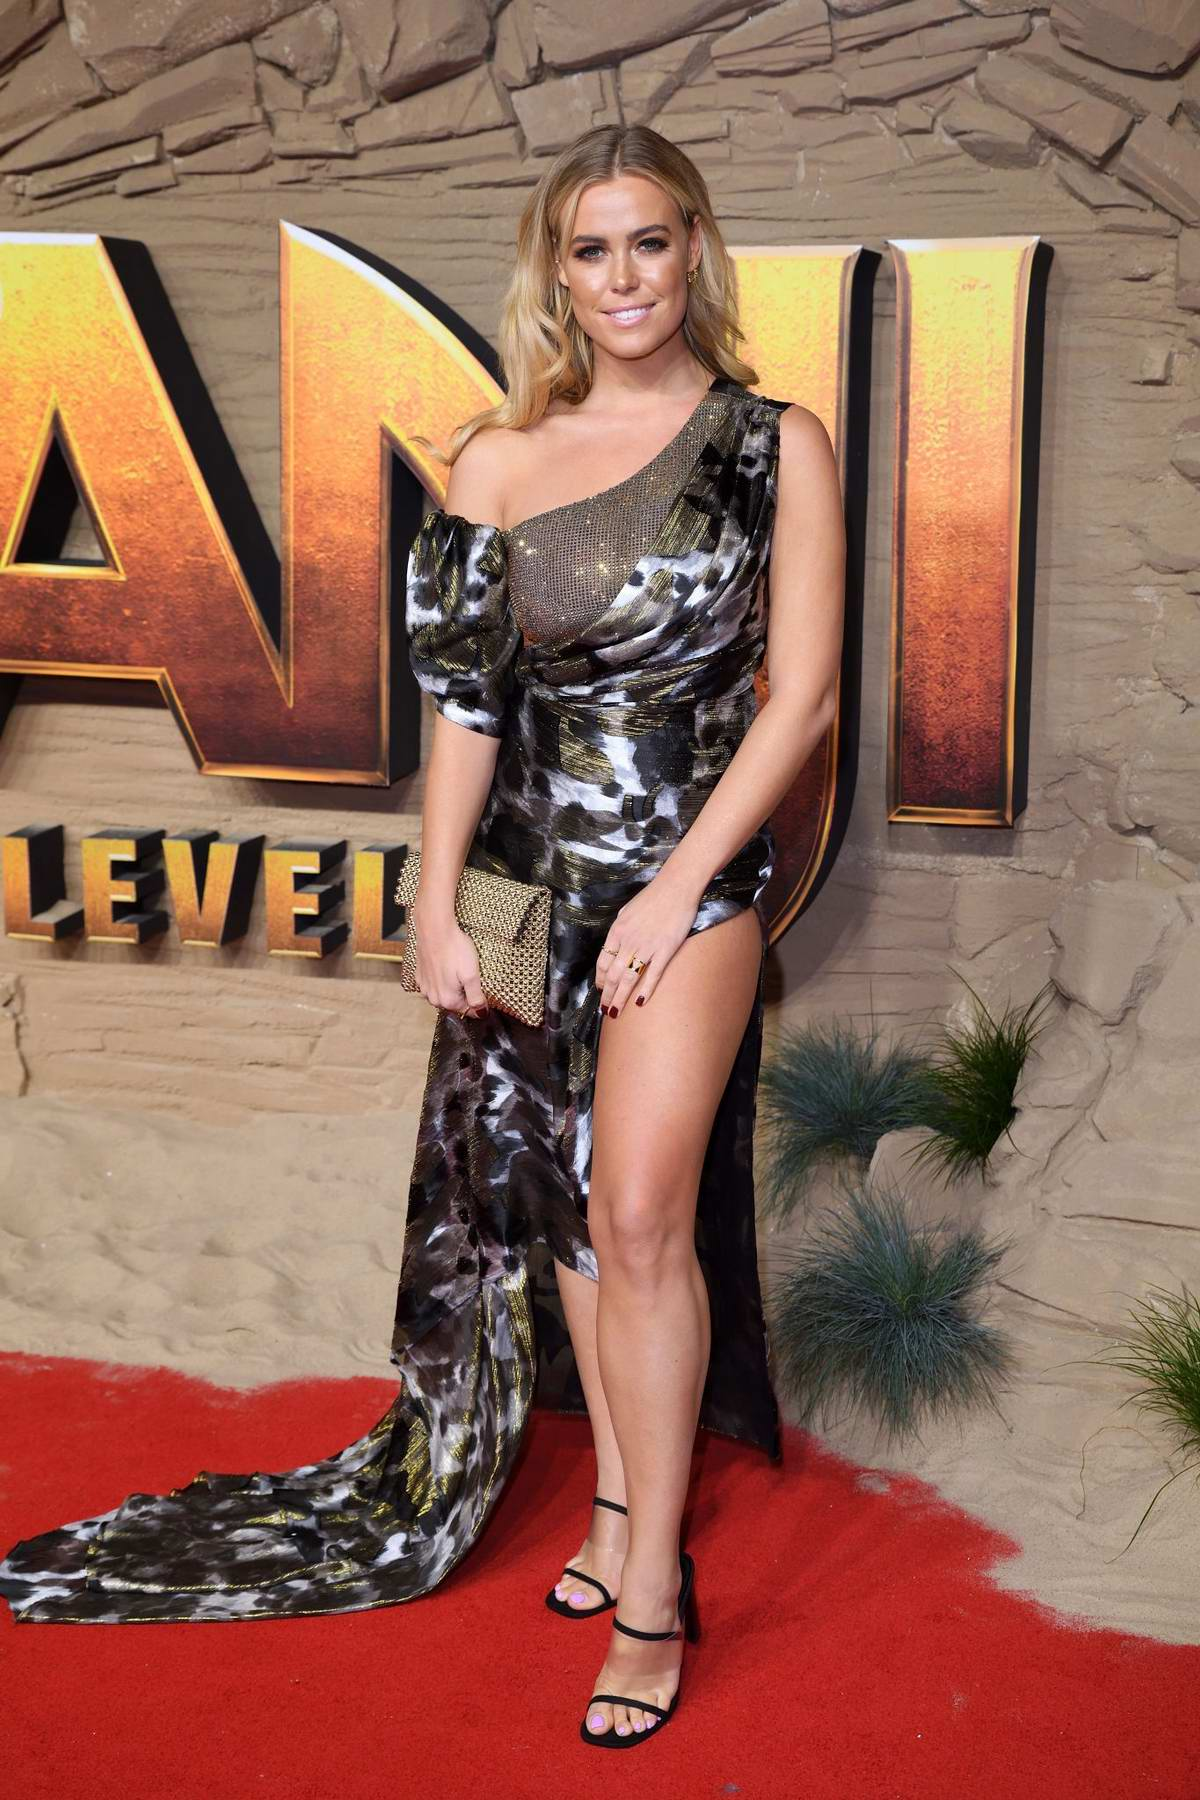 Chloe Meadows attends the Premiere of Jumanji: The Next Level in London, UK